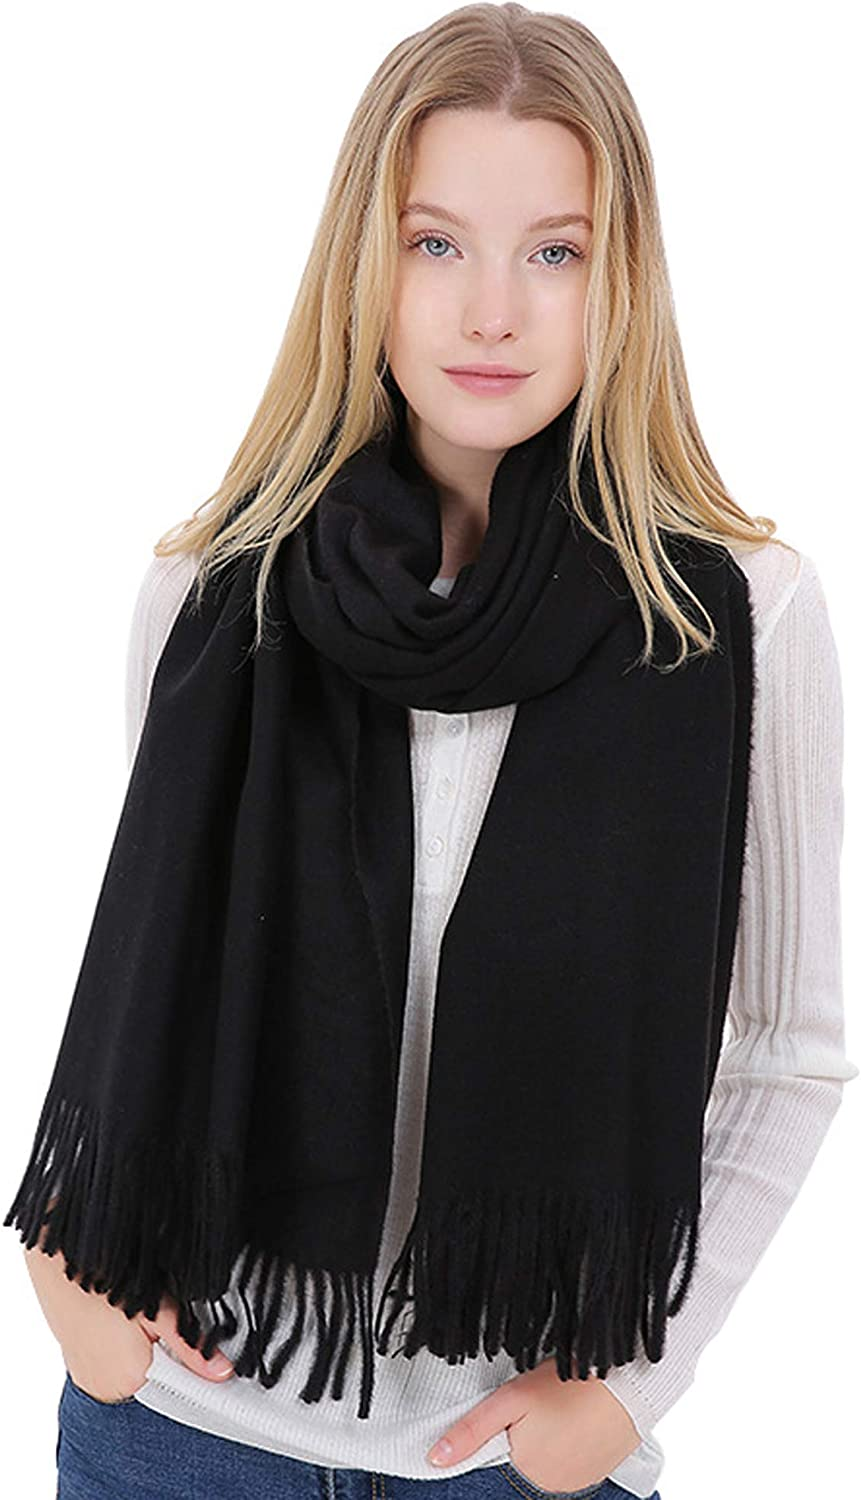 Infinity Scarf Blanket Cashmere Women Men,LONGWEIZ Unisex Winter Warm Cozy Scarf for Women and Men